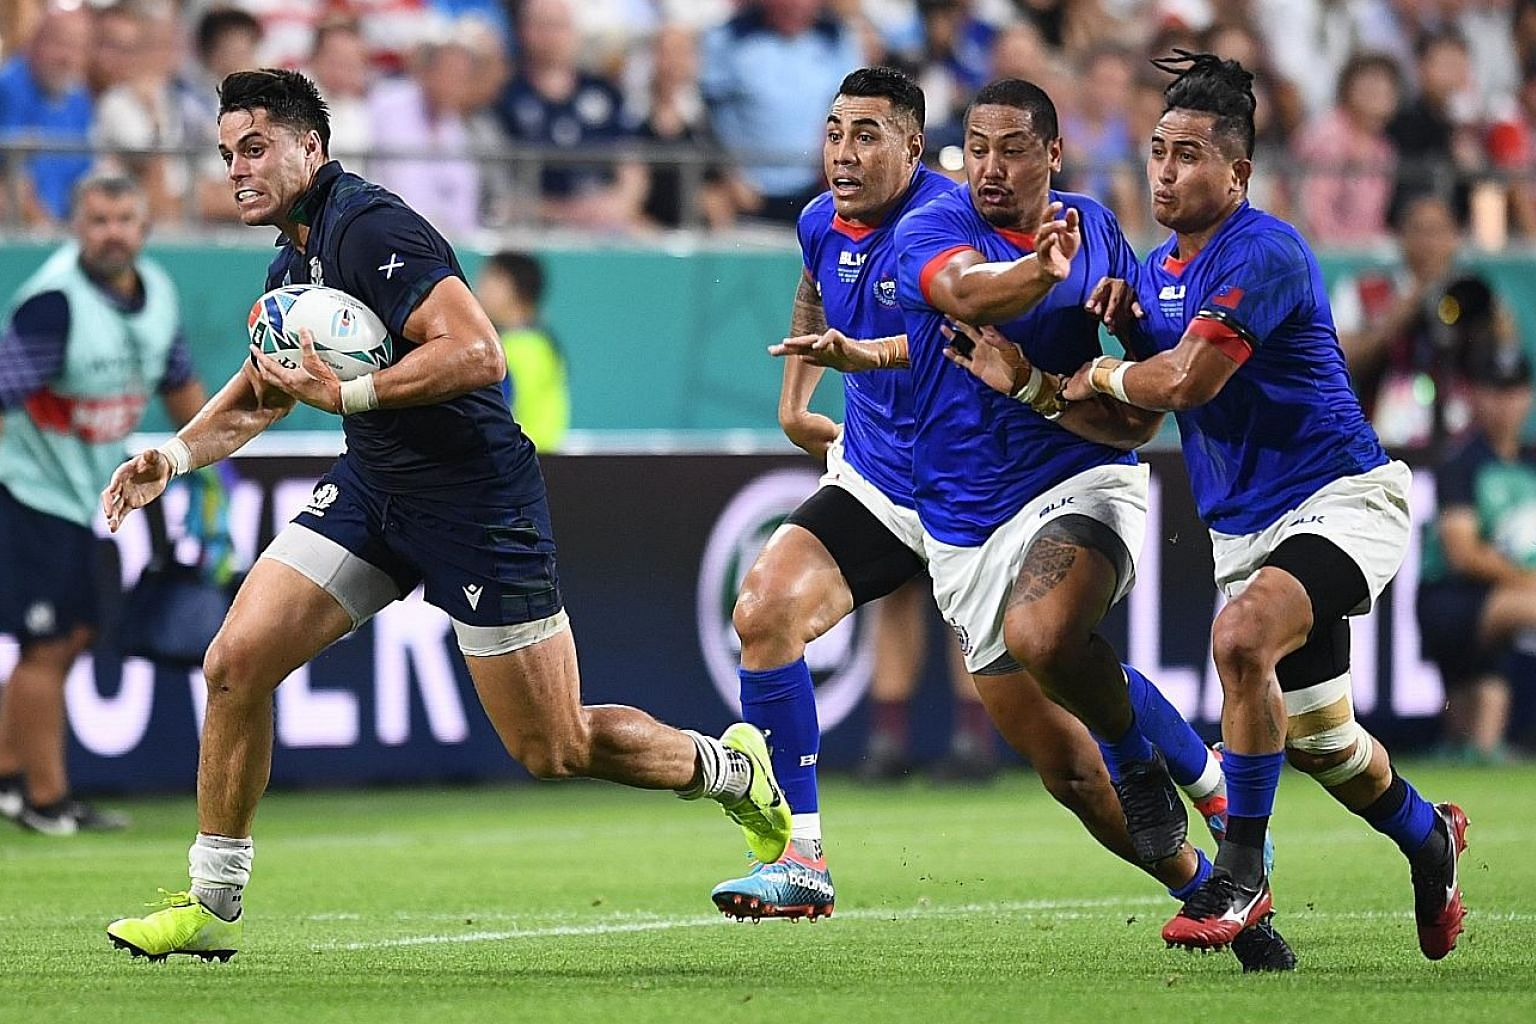 Scotland's Sean Maitland outpacing the Samoan team to score their first try, setting the Scots on the way to a 34-0 whitewash and a fighting chance for second spot in their pool: